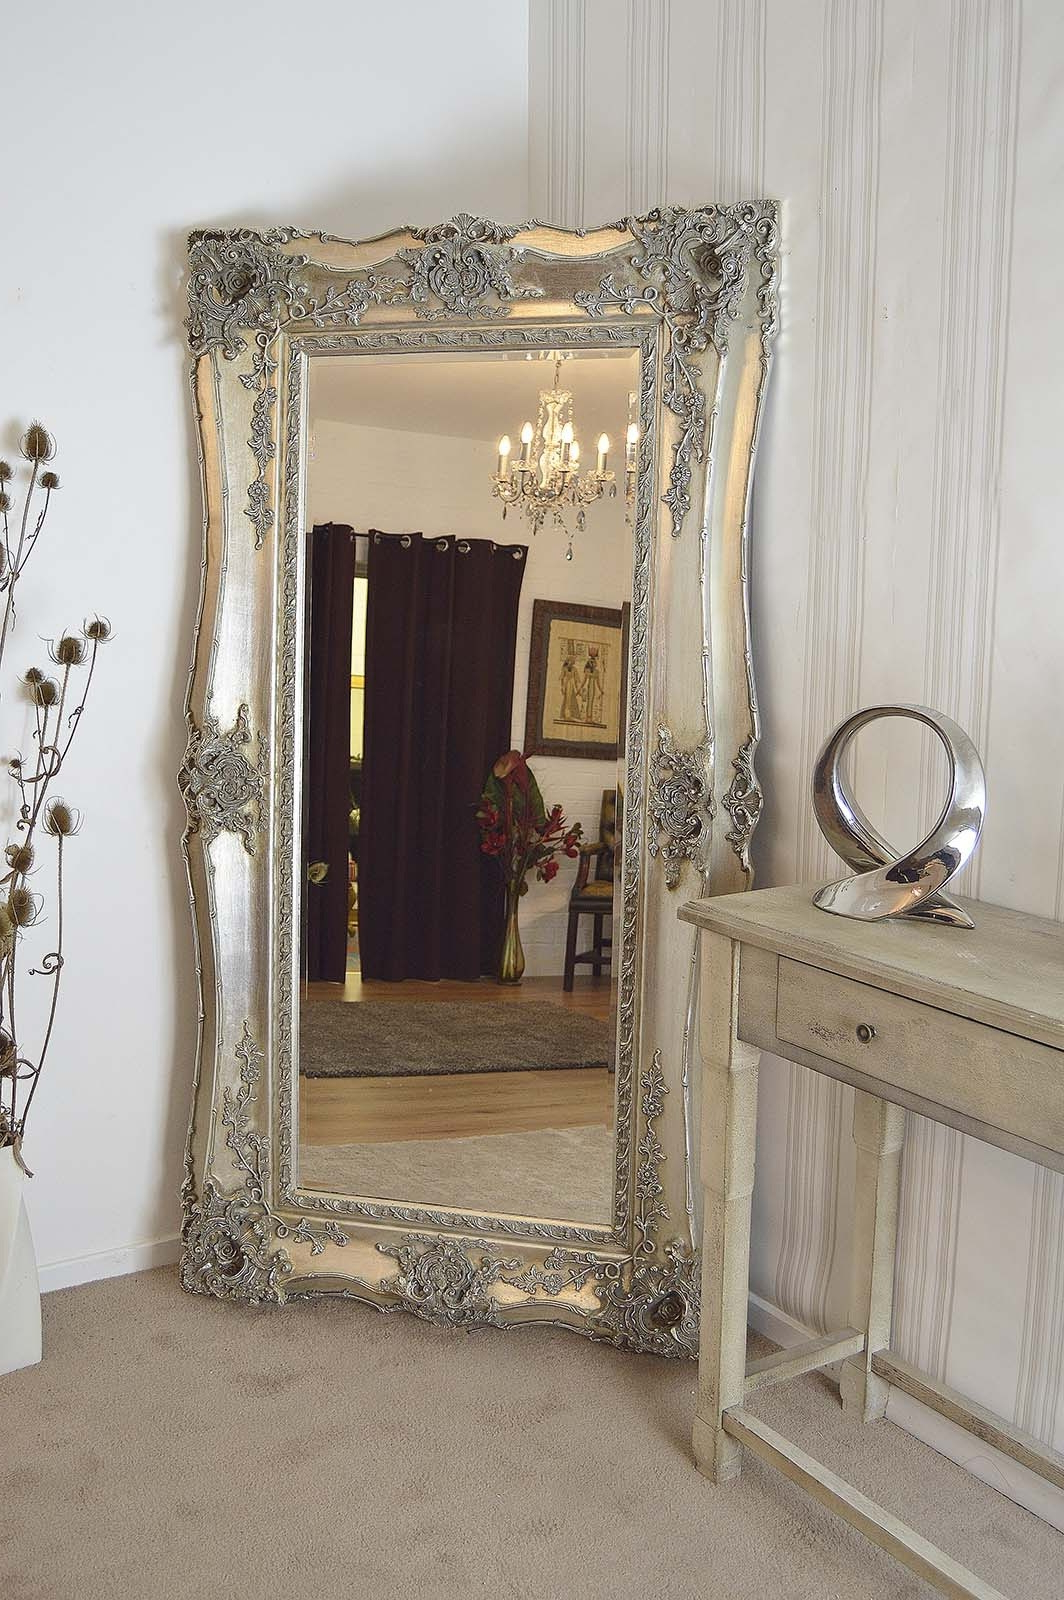 Big Wall Mirrors Regarding Newest Large Wall Mirrors For Sale In Cheery Decorative Framed Mirror (View 6 of 20)